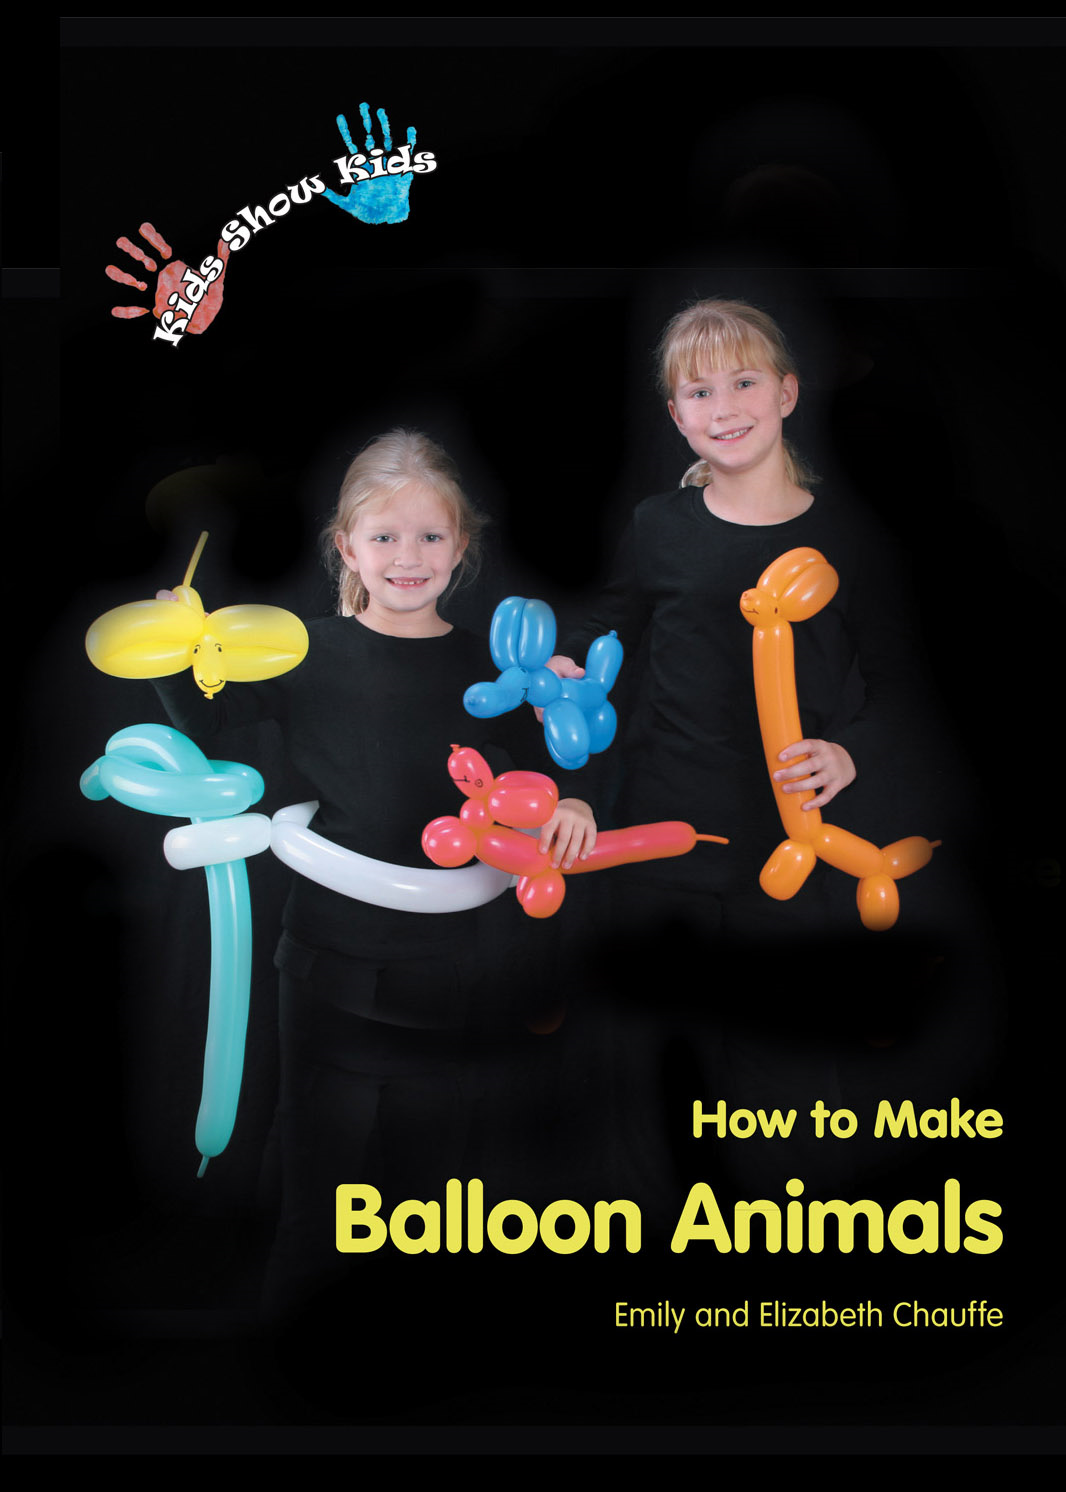 Kids Show Kids How to Make Balloon Animals By: Elizabeth Chauffe,Emily Chauffe